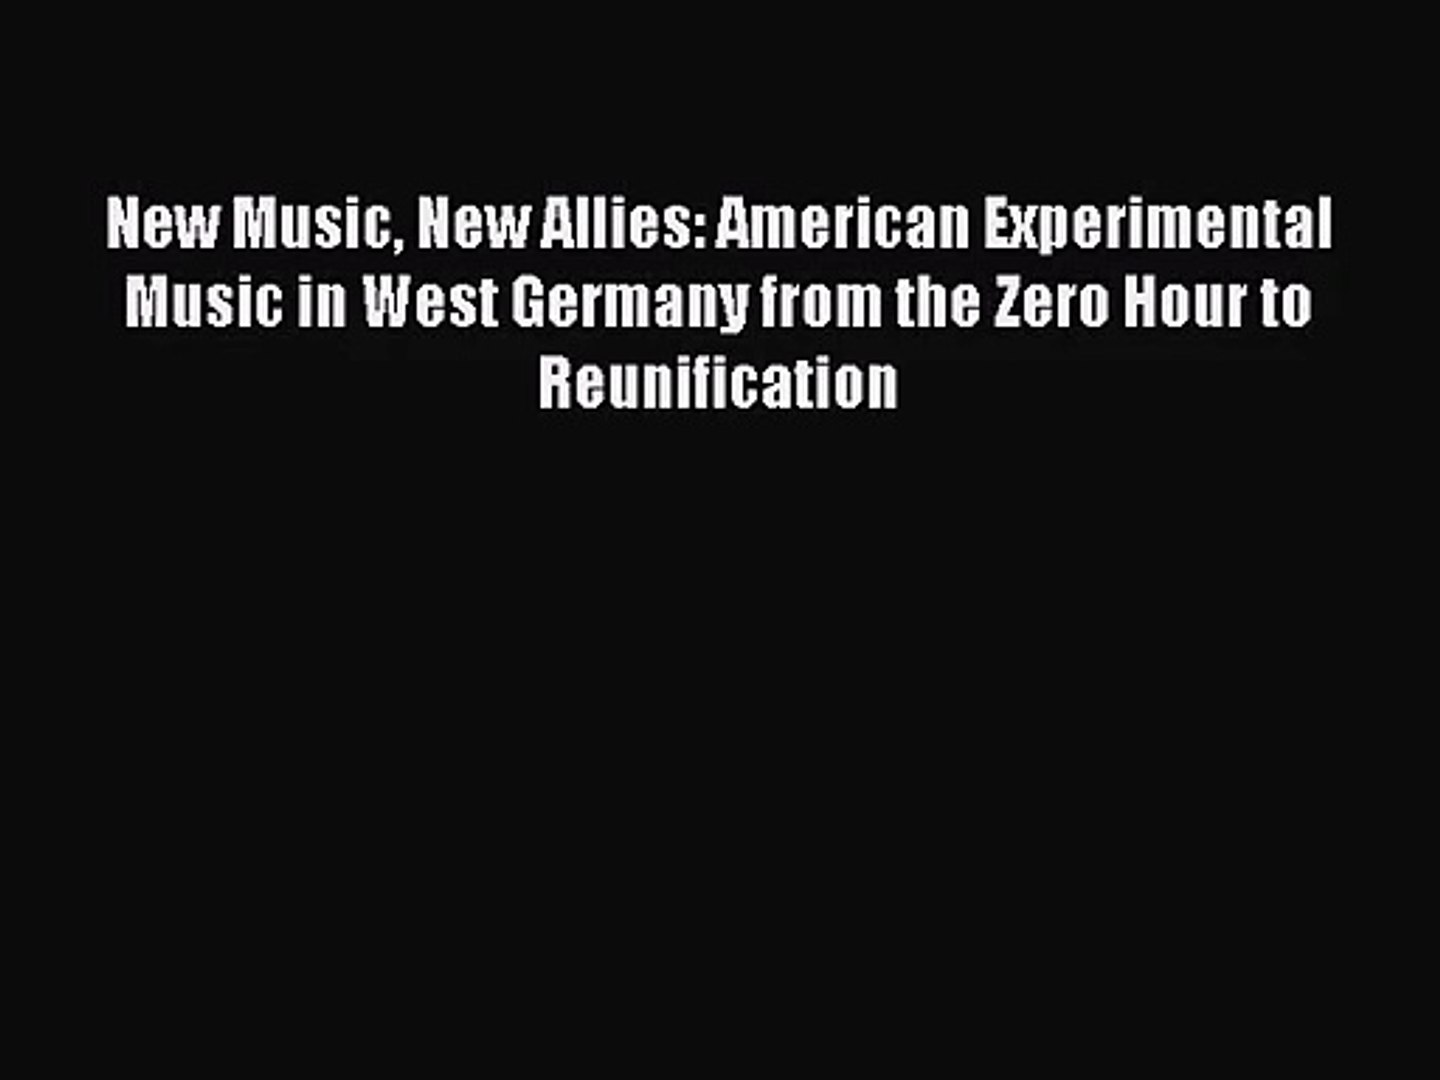 PDF Download New Music New Allies: American Experimental Music in West Germany from the Zero